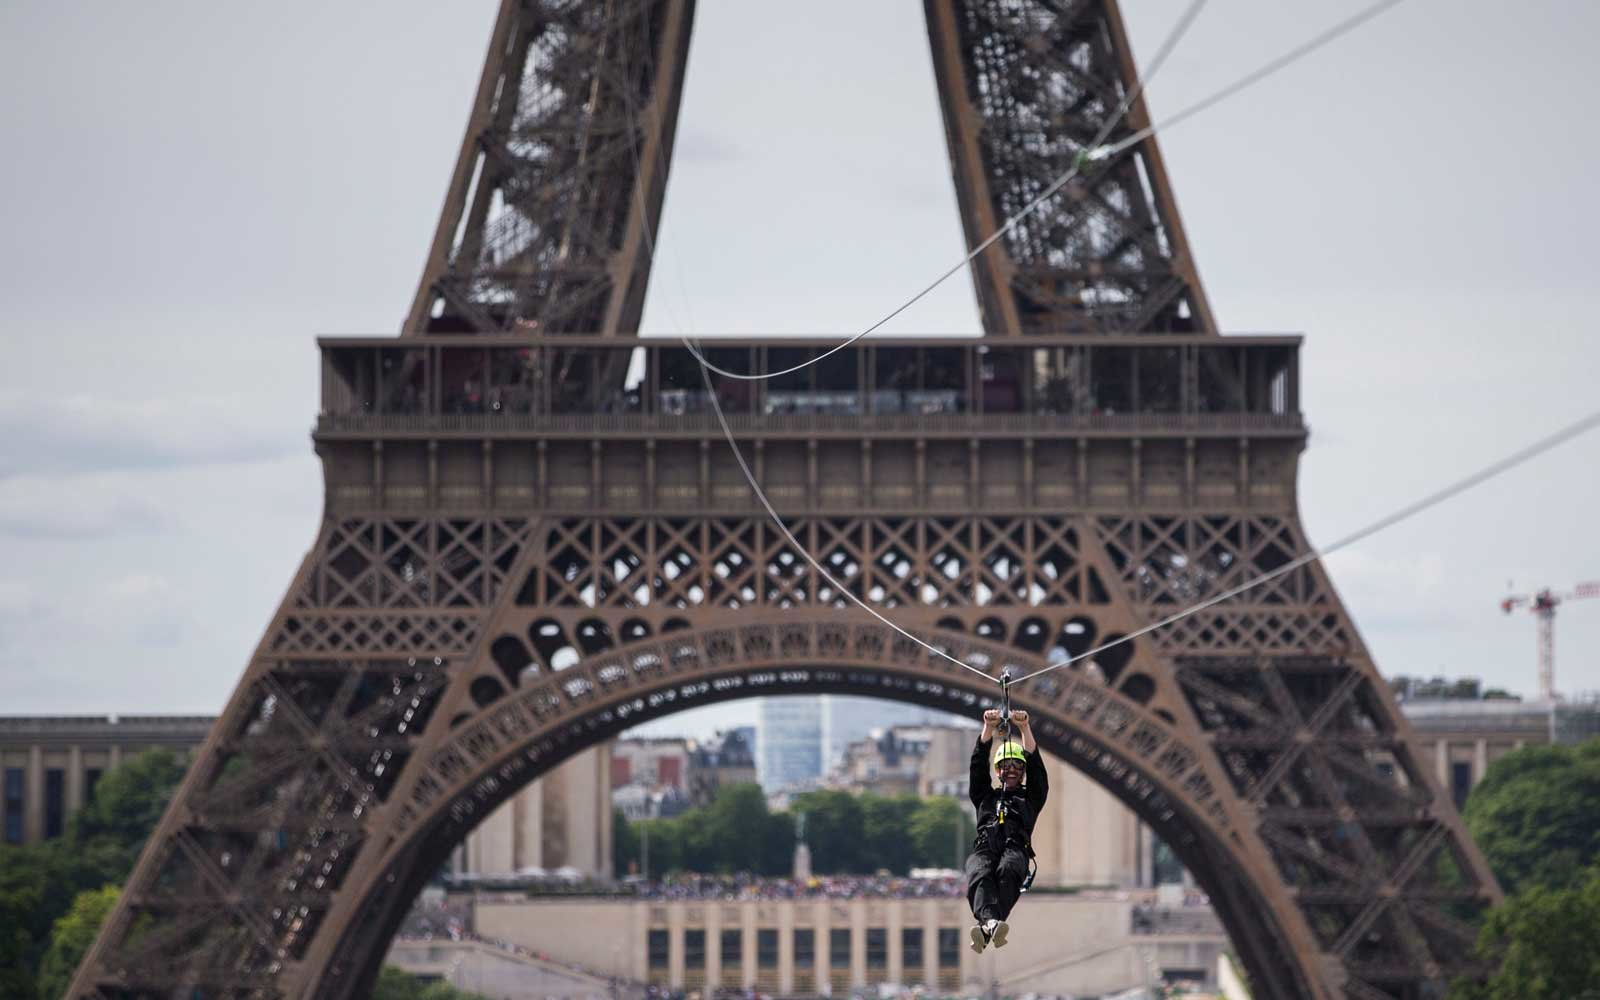 Thrillseekers courageous zip line off Eiffel Tower